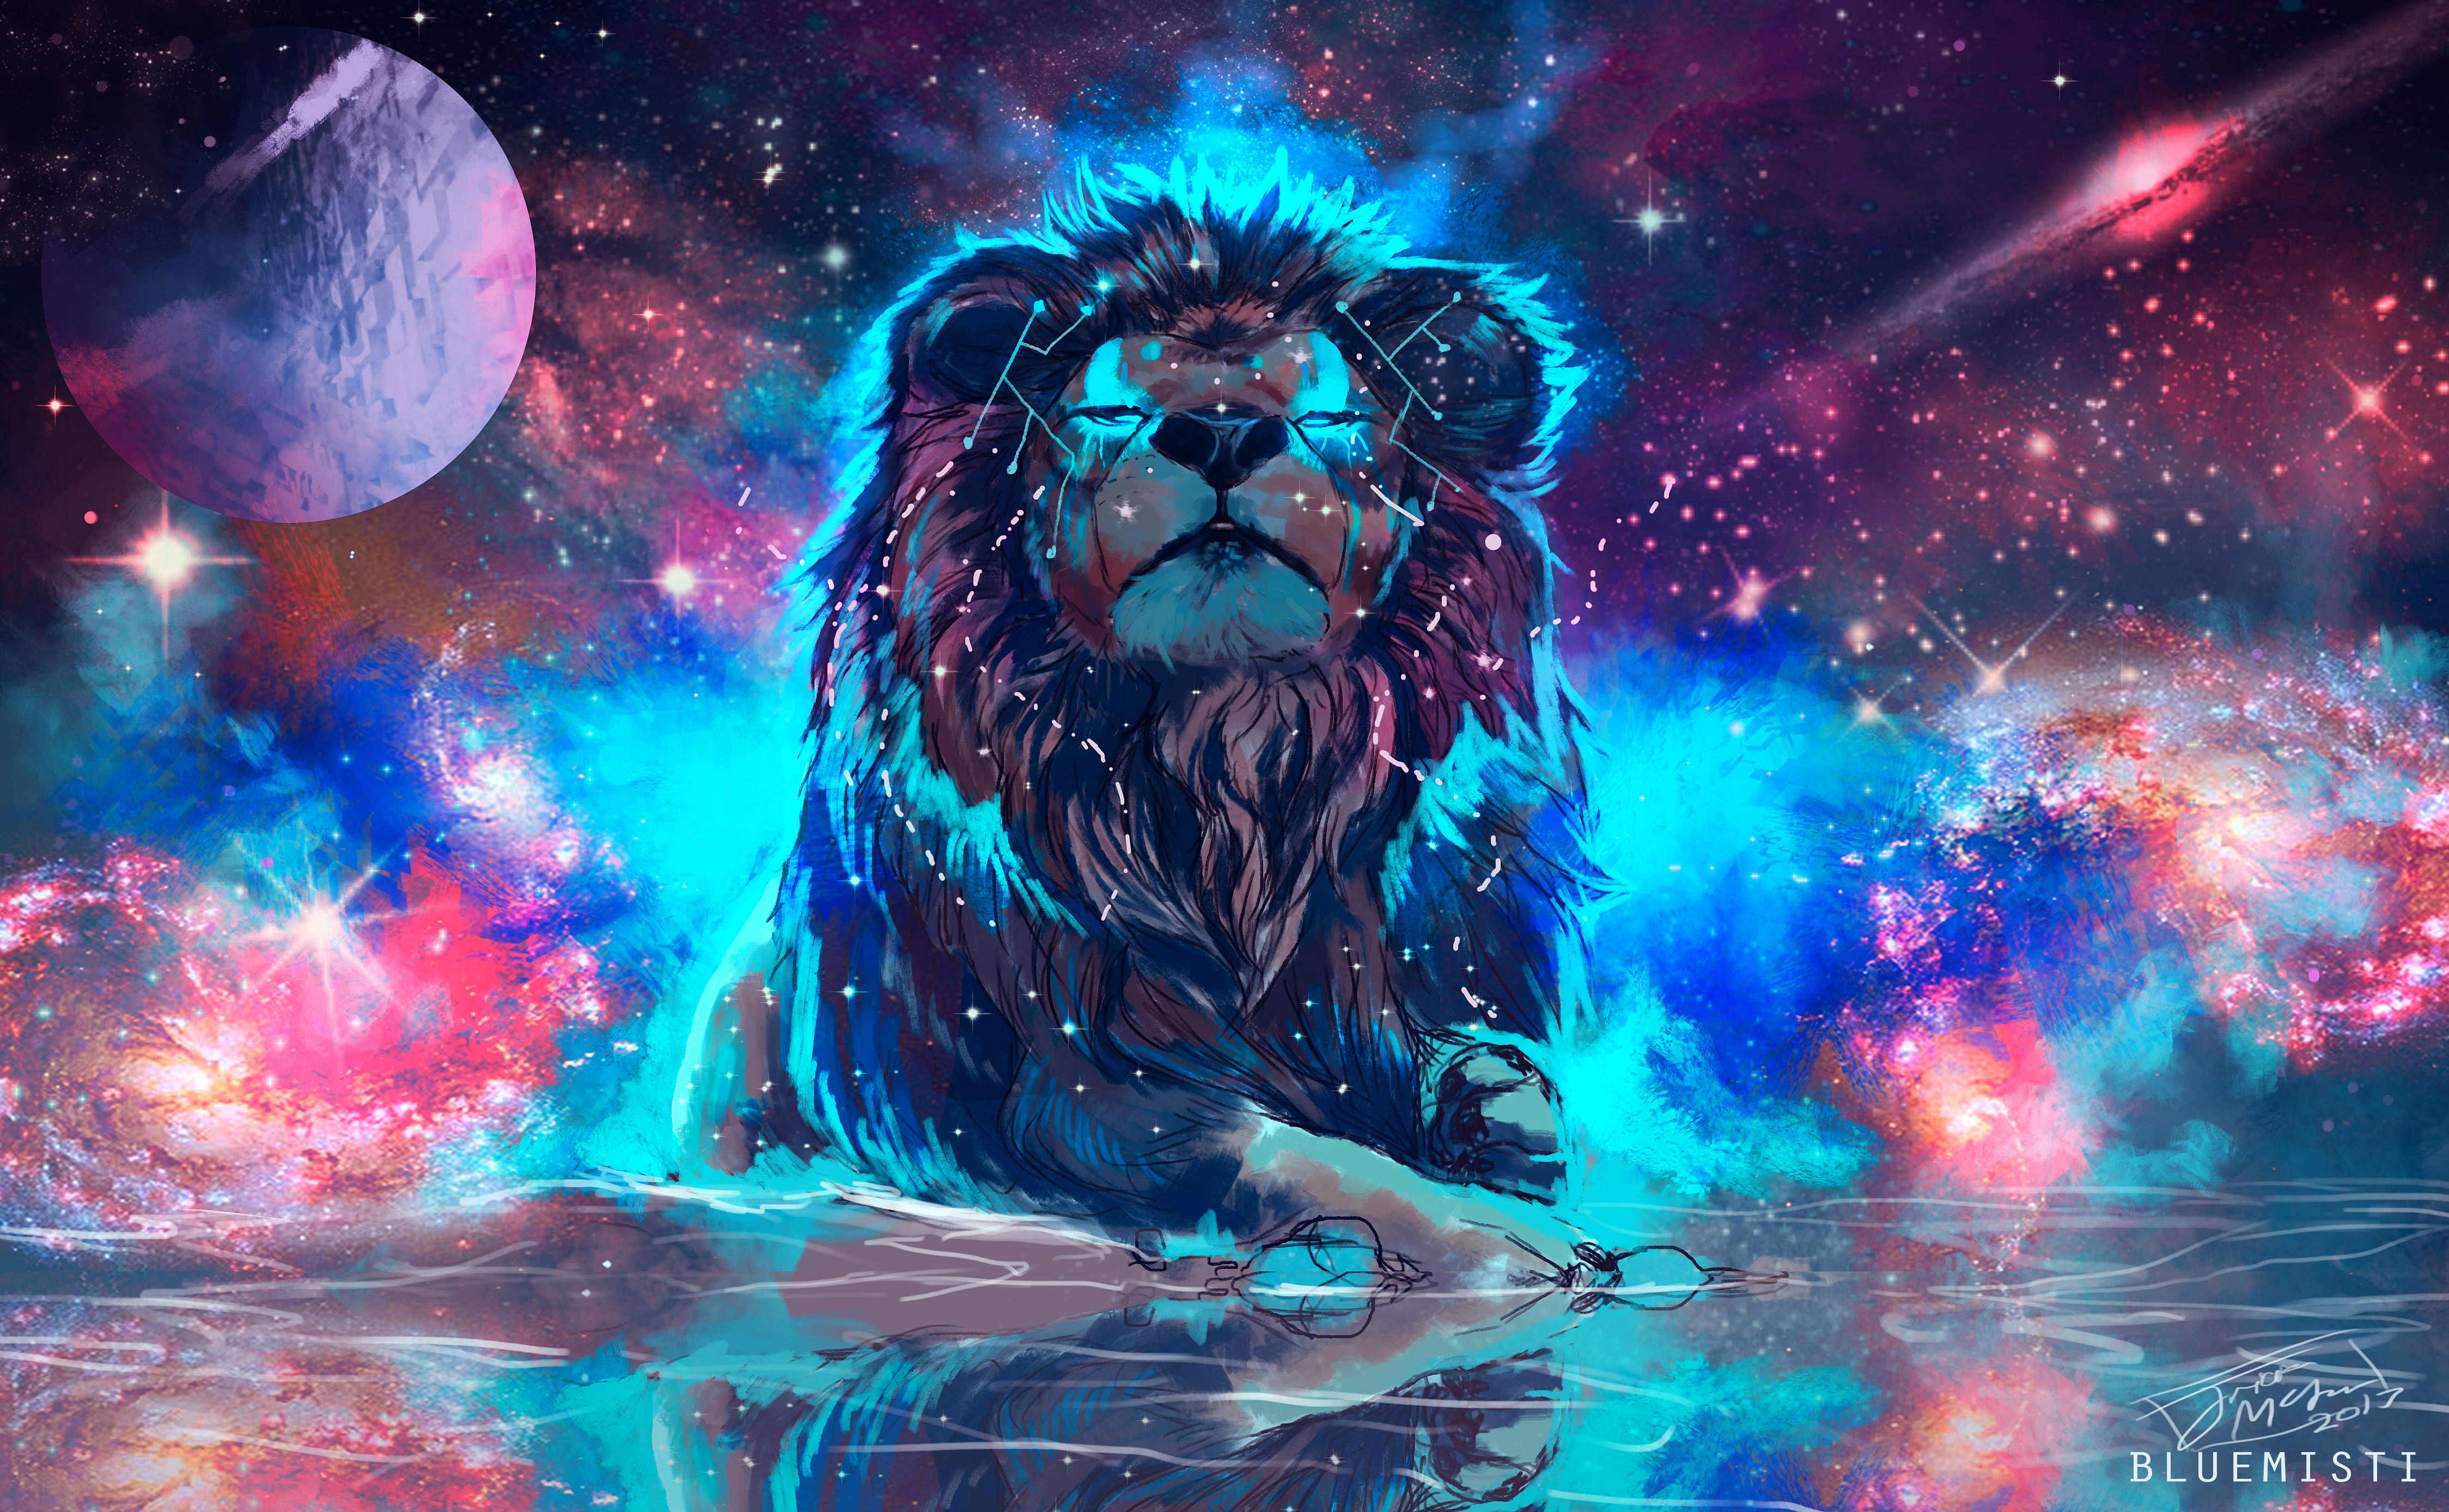 1360x768 Lion 4k Artistic Colorful Laptop Hd Hd 4k Wallpapers Images Backgrounds Photos And Pictures